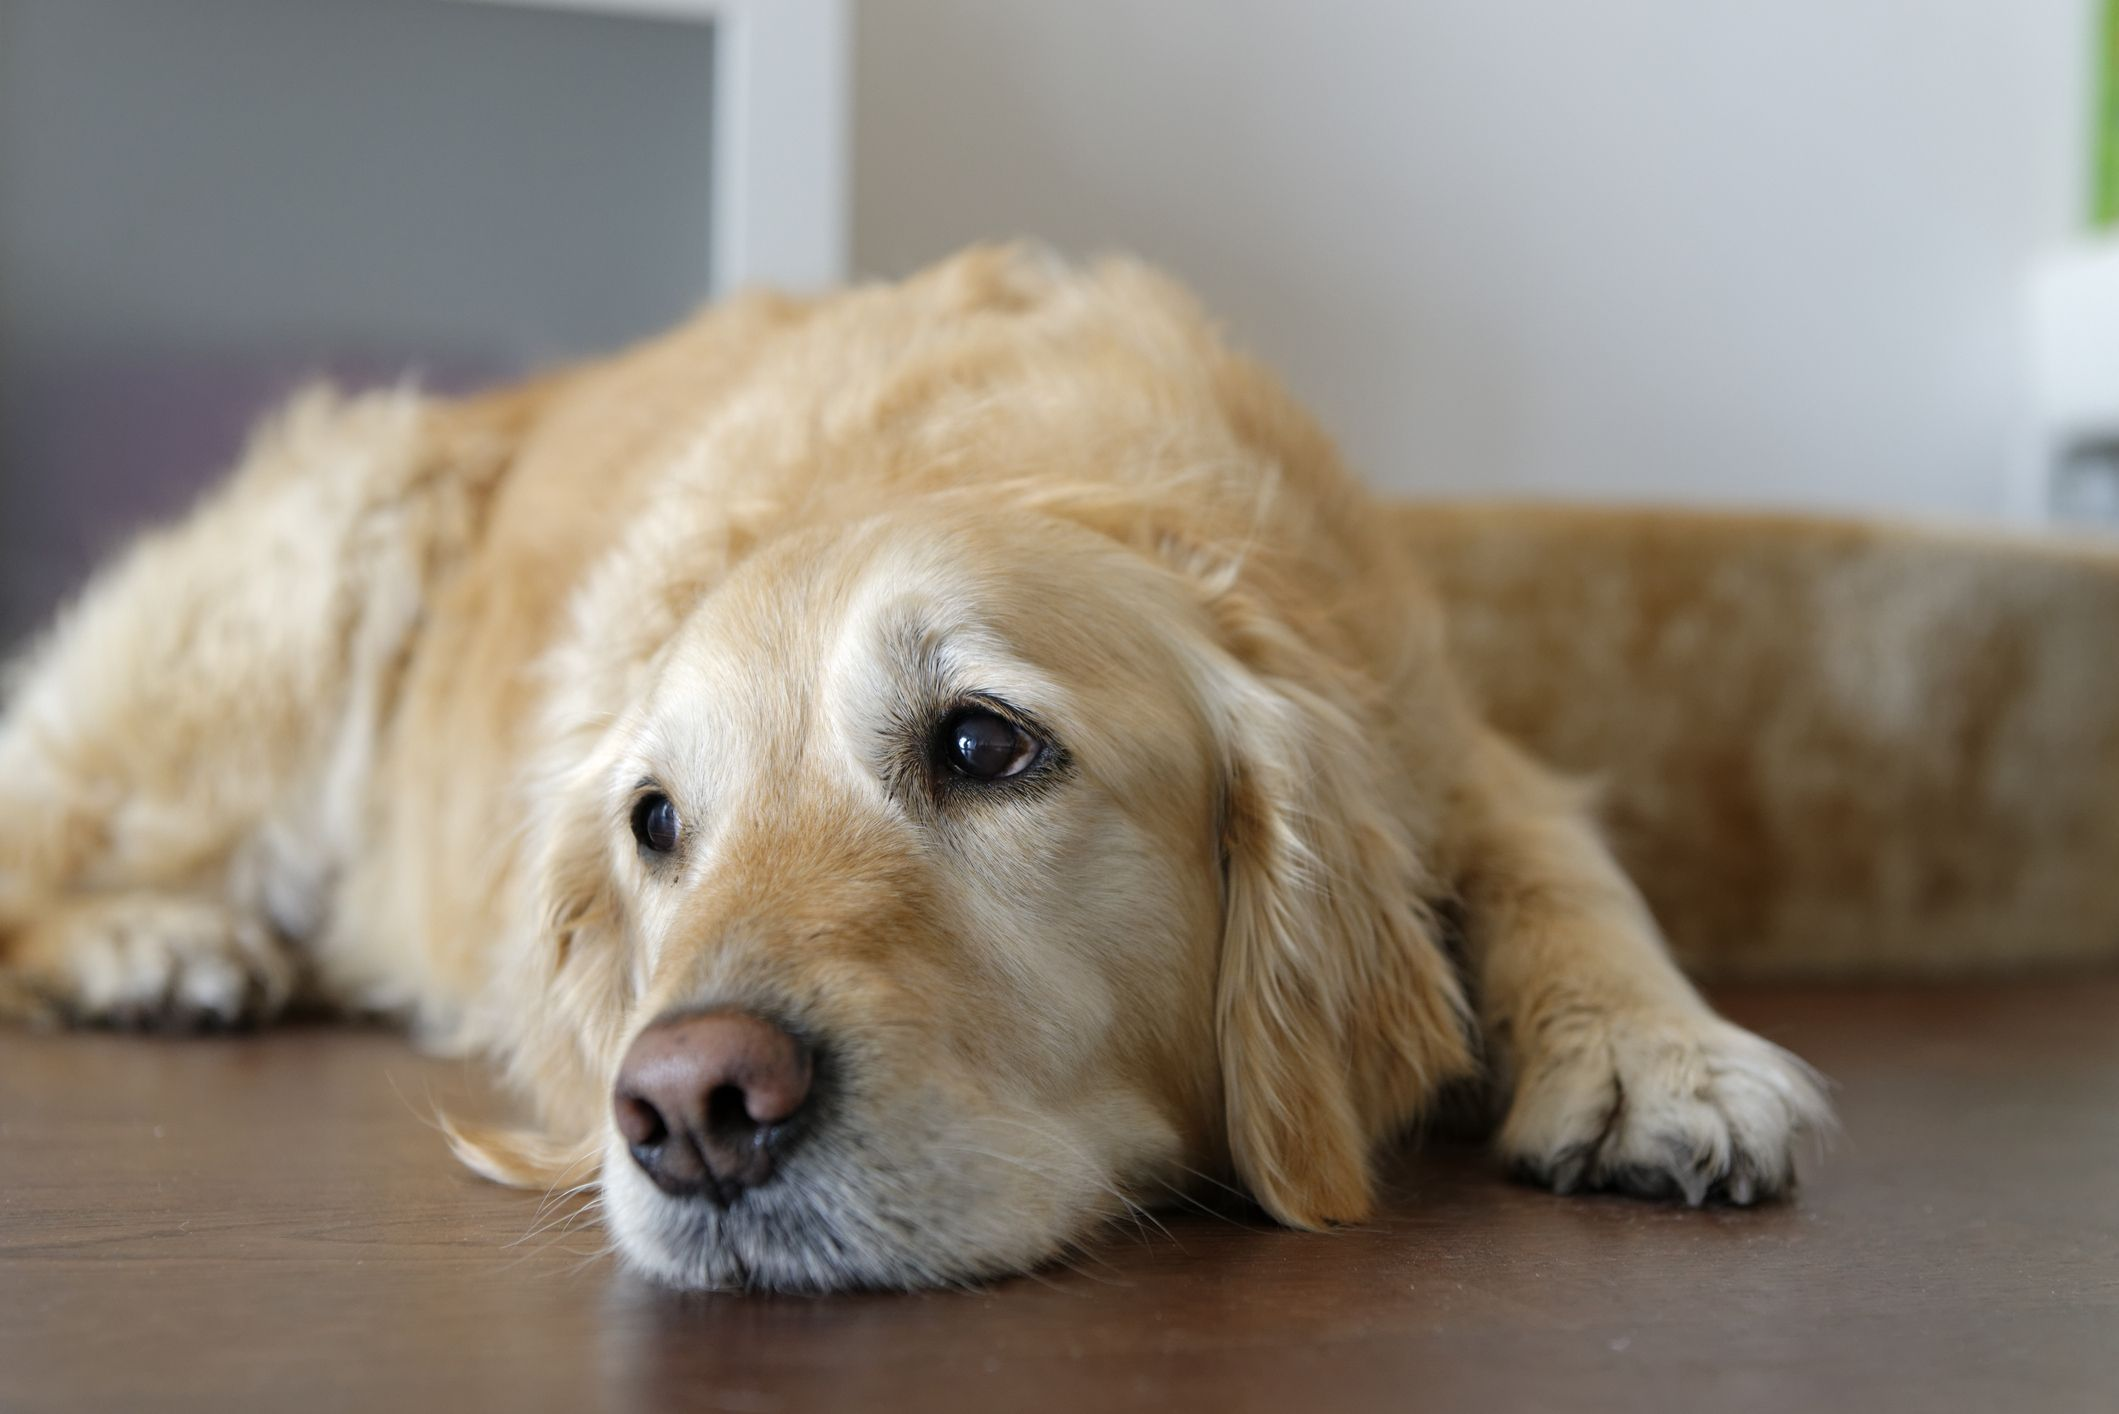 7 beautiful ways to remember your dog after they have died